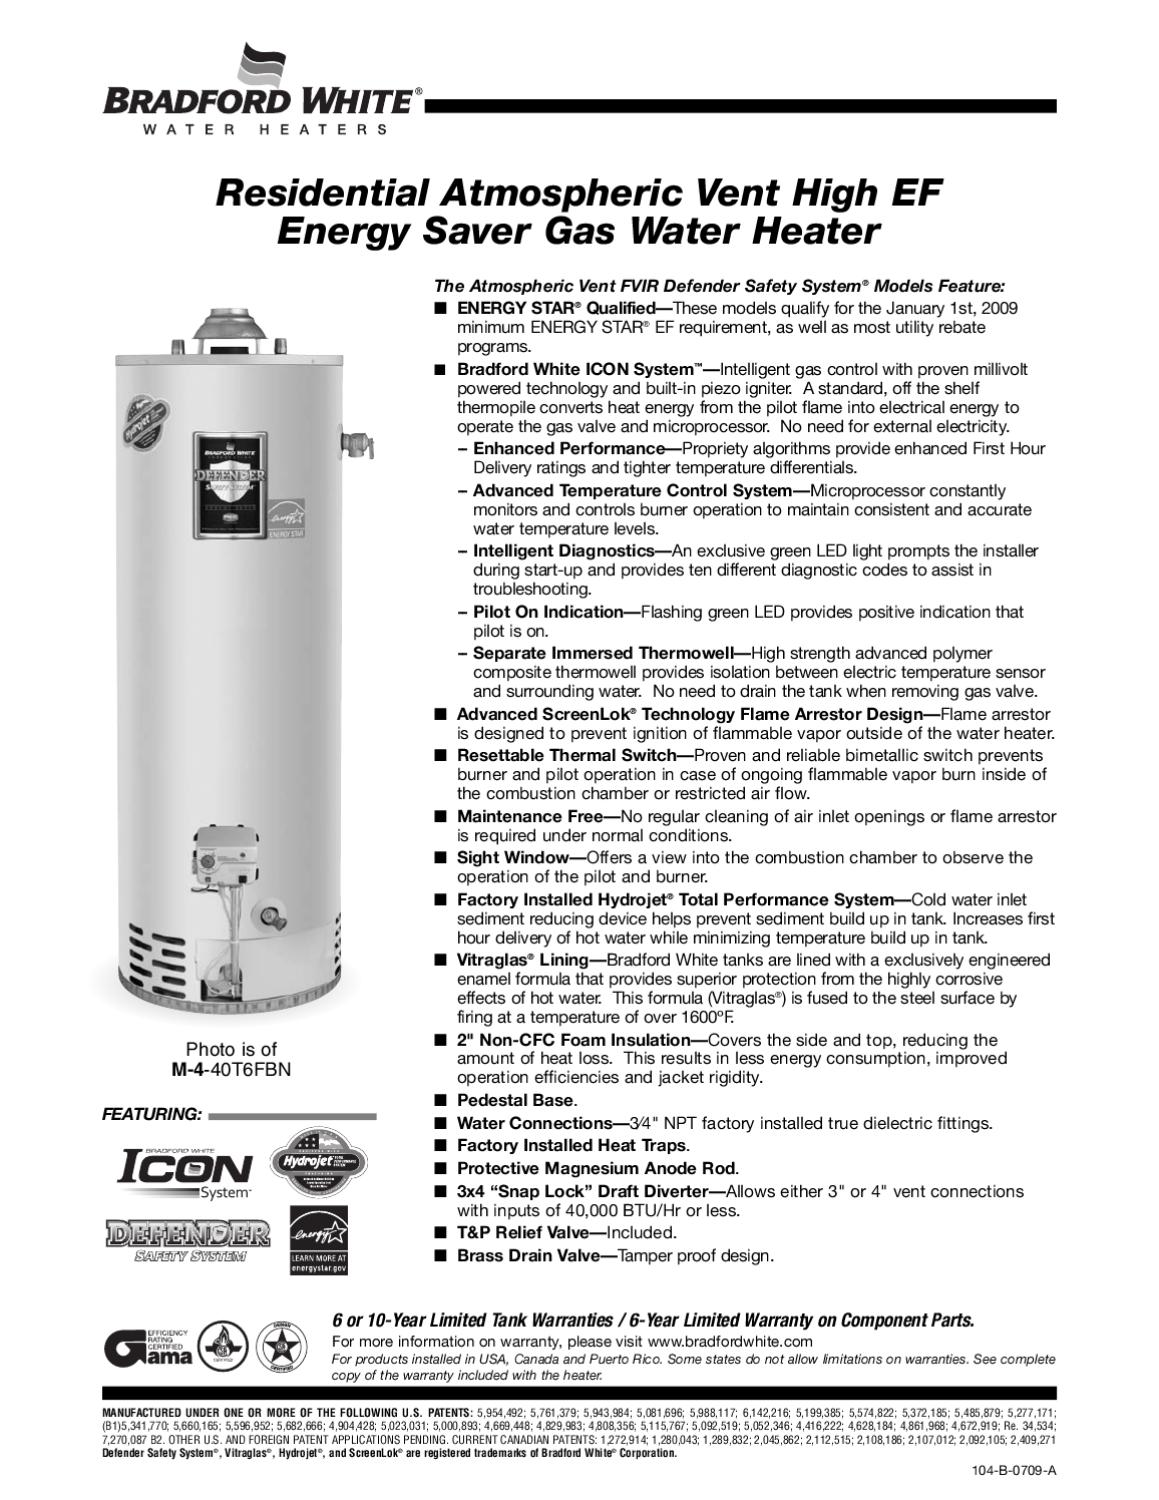 Residential Atmospheric Vent Gas Water Heaters By Mckinney